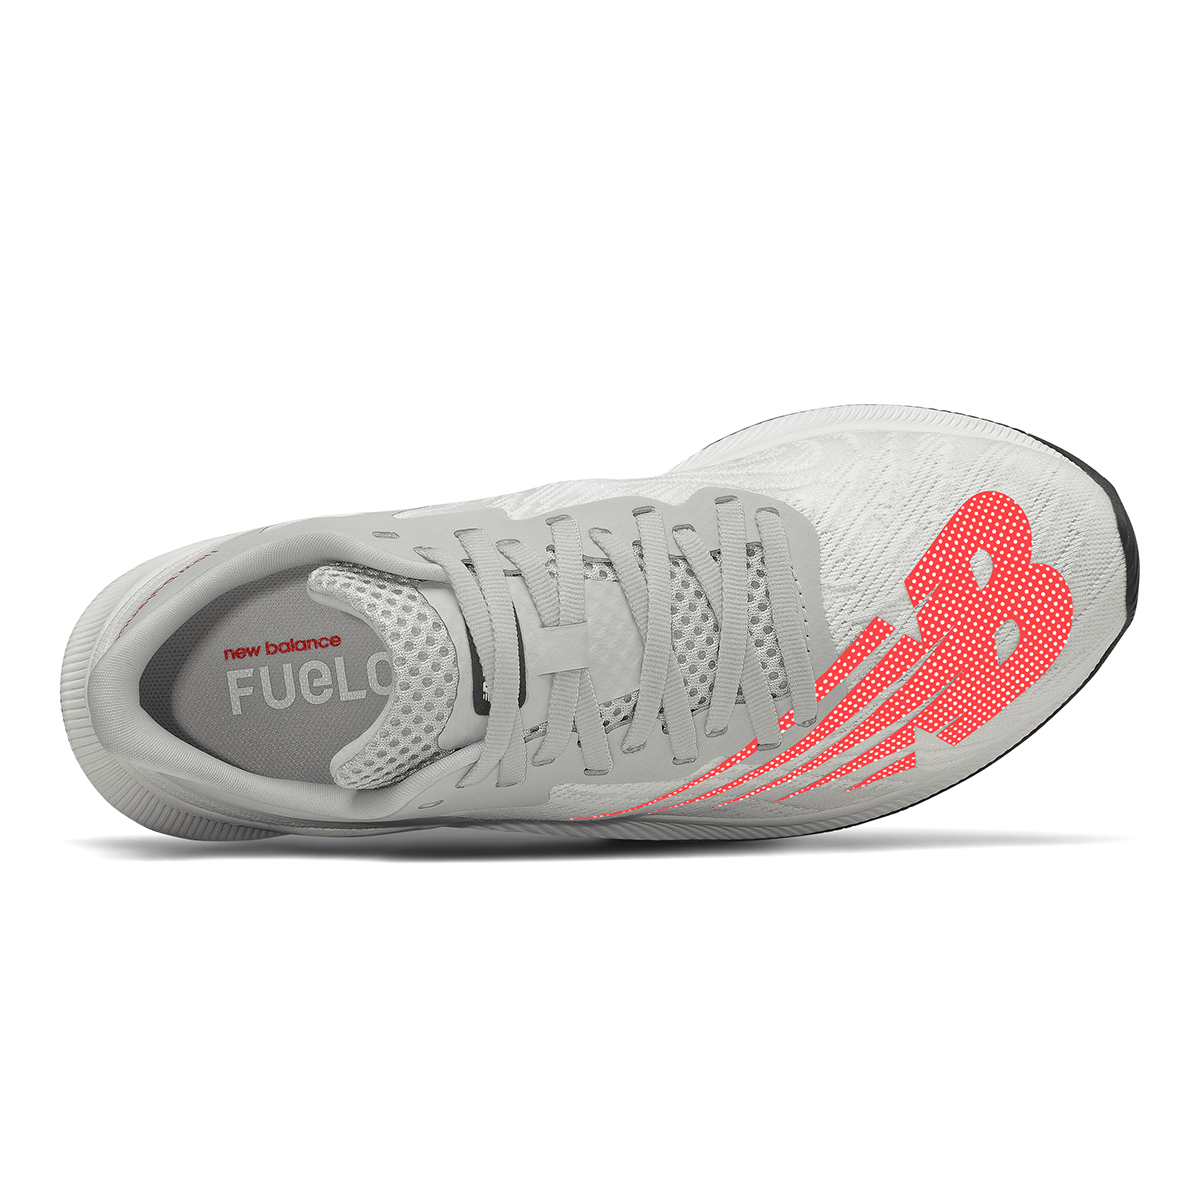 Women's New Balance FuelCell Prism Running Shoe - Color: White - Size: 6 - Width: Regular, White, large, image 3